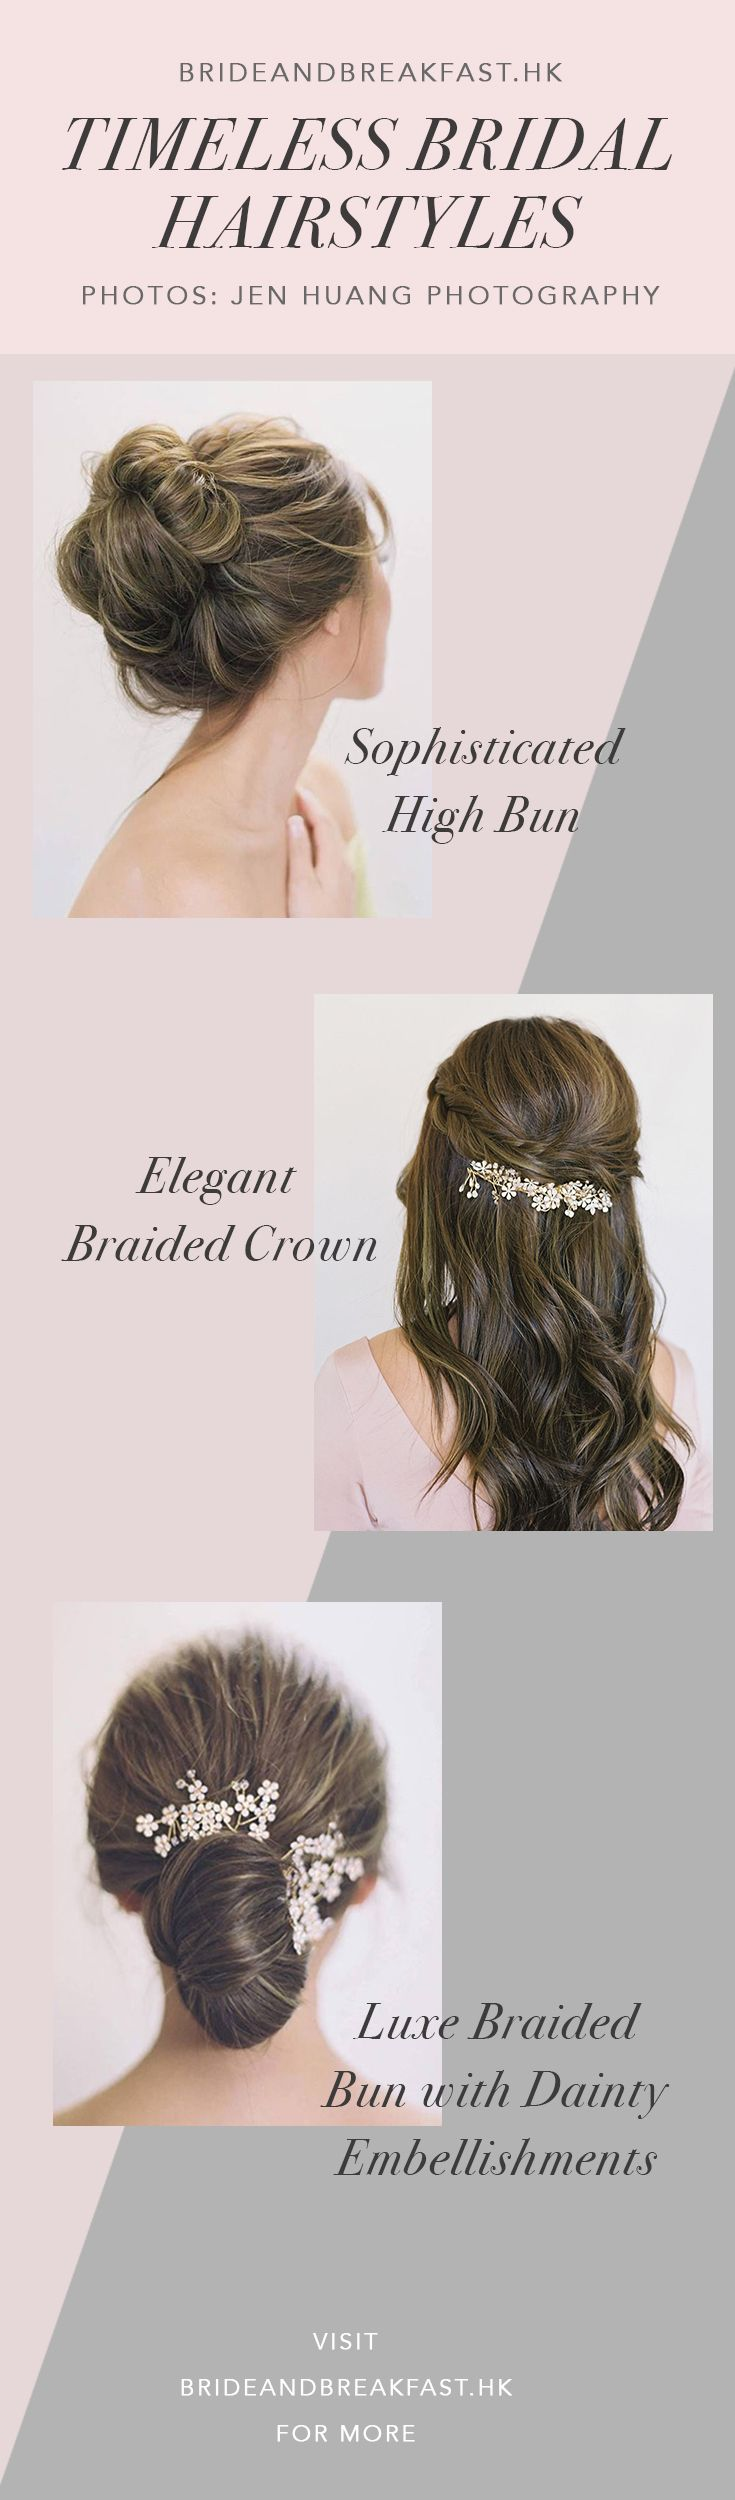 6 Timeless Wedding Hairstyles for Every Bride-to-Be